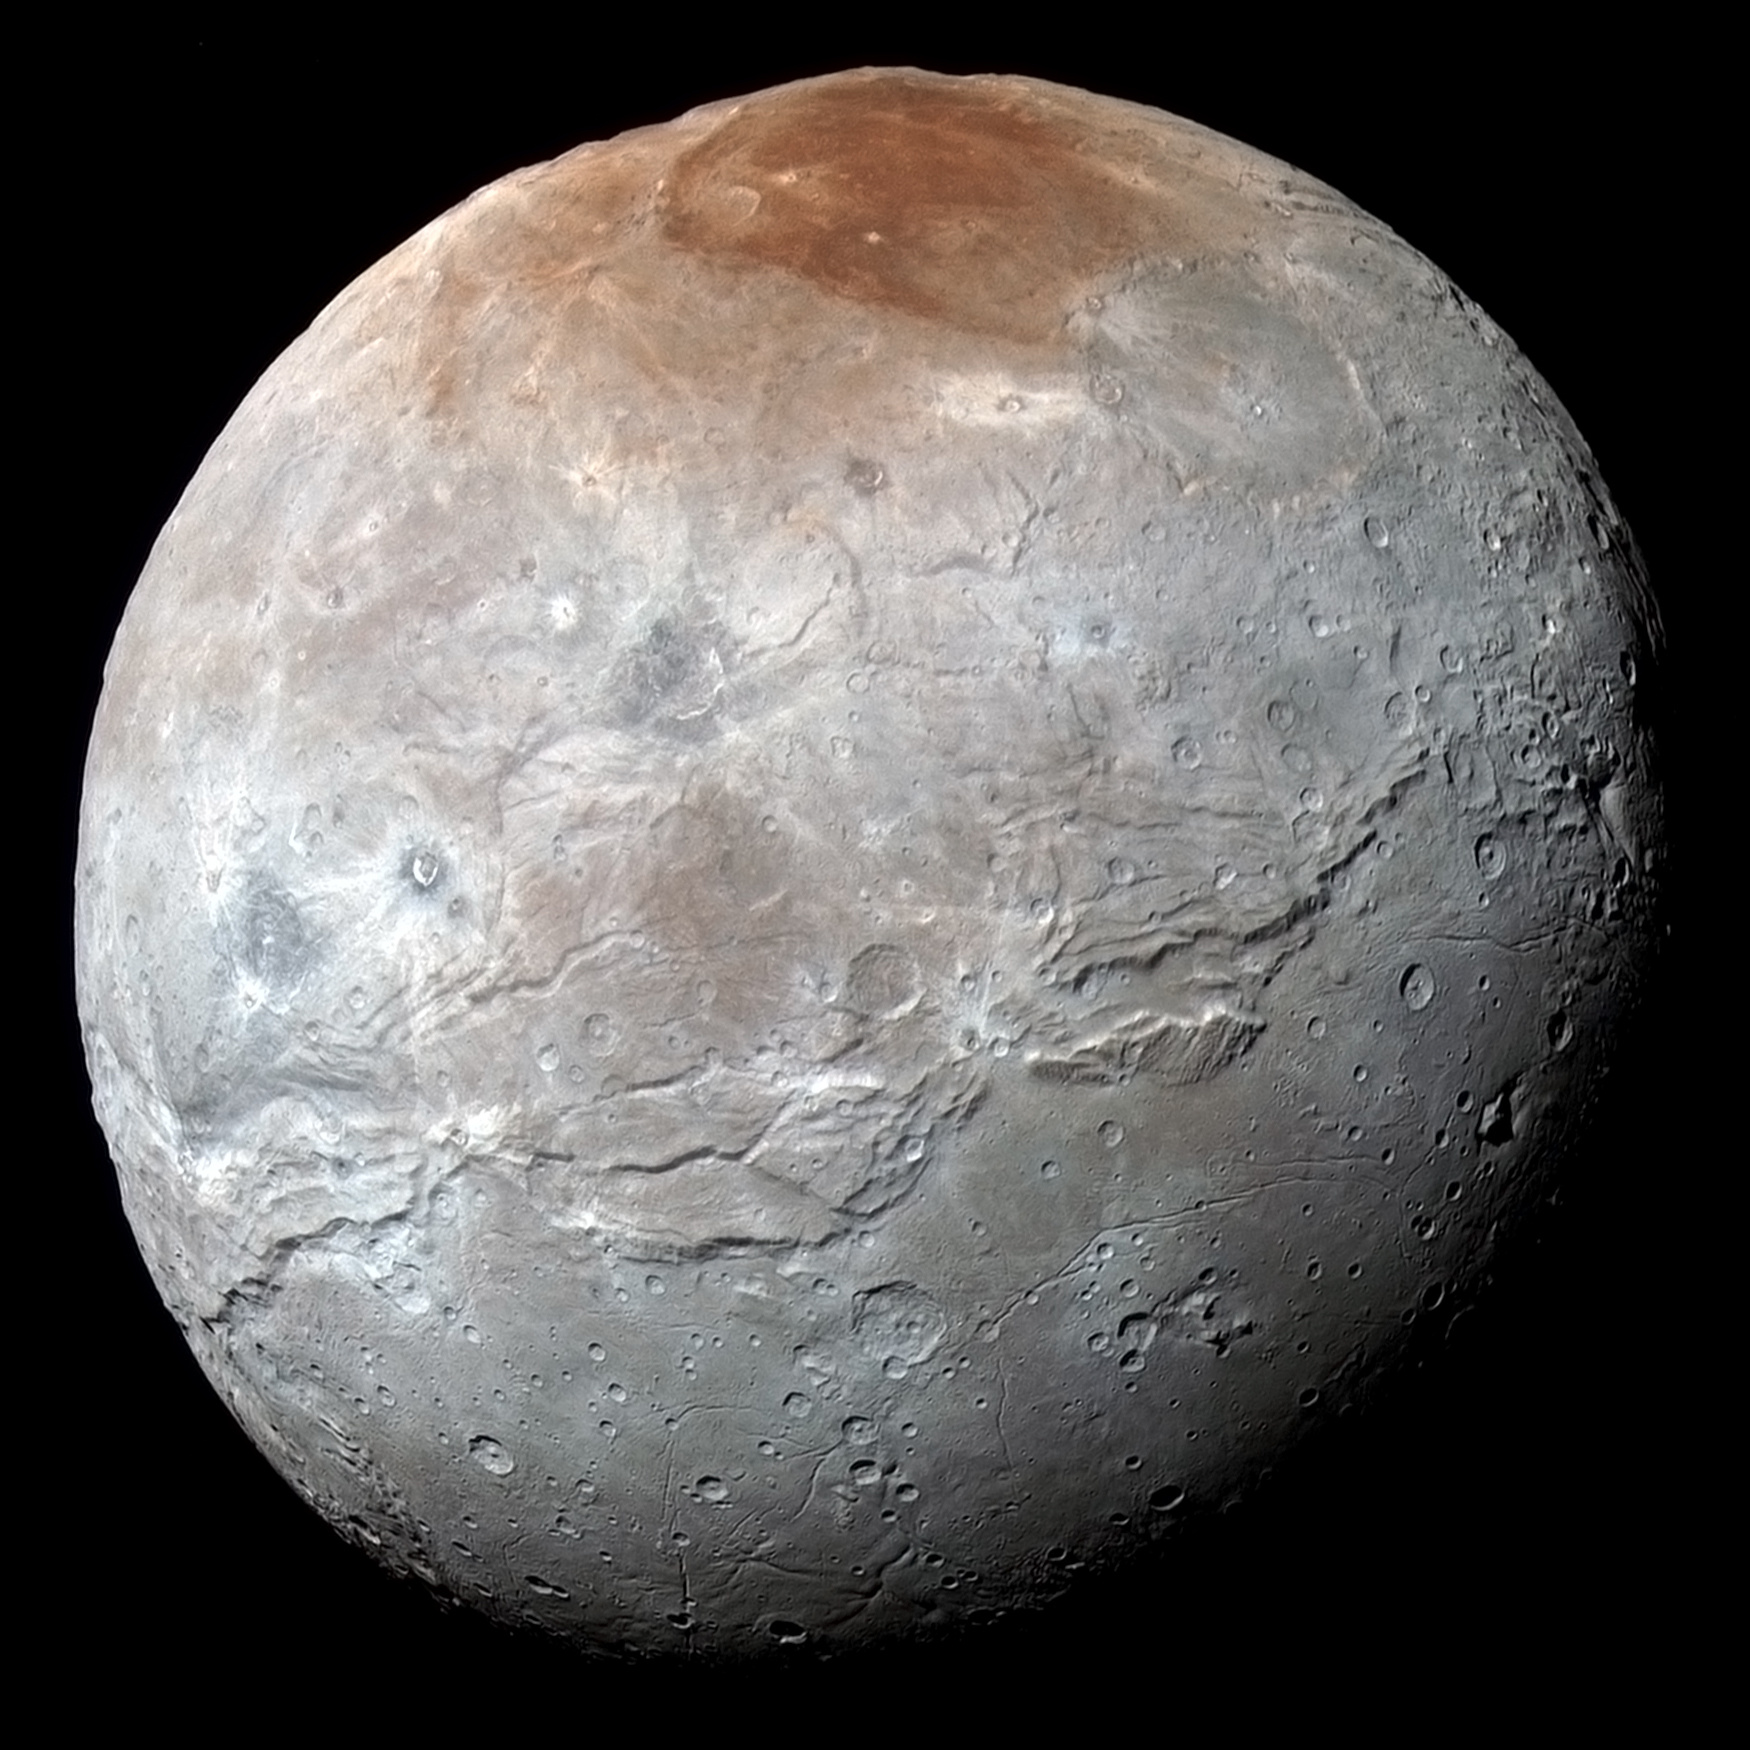 NASA's New Horizons captured this high-resolution enhanced colour view of Charon just before closest approach on 14 July 2015 and transmitted to Earth on 21September. The image combines blue, red and infrared images taken by the spacecraft's Ralph/Multispectral Visual Imaging Camera (MVIC); the colours are processed to best highlight the variation of surface properties across Charon. Charon's colour palette is not as diverse as Pluto's; most striking is the reddish north (top) polar region, informally named MordorMacula. Charon is 754miles (1,214kilometres) across; this image resolves details as small as 1.8miles (2.9kilometres). Image credit: NASA/Johns Hopkins University Applied Physics Laboratory/Southwest Research Institute.